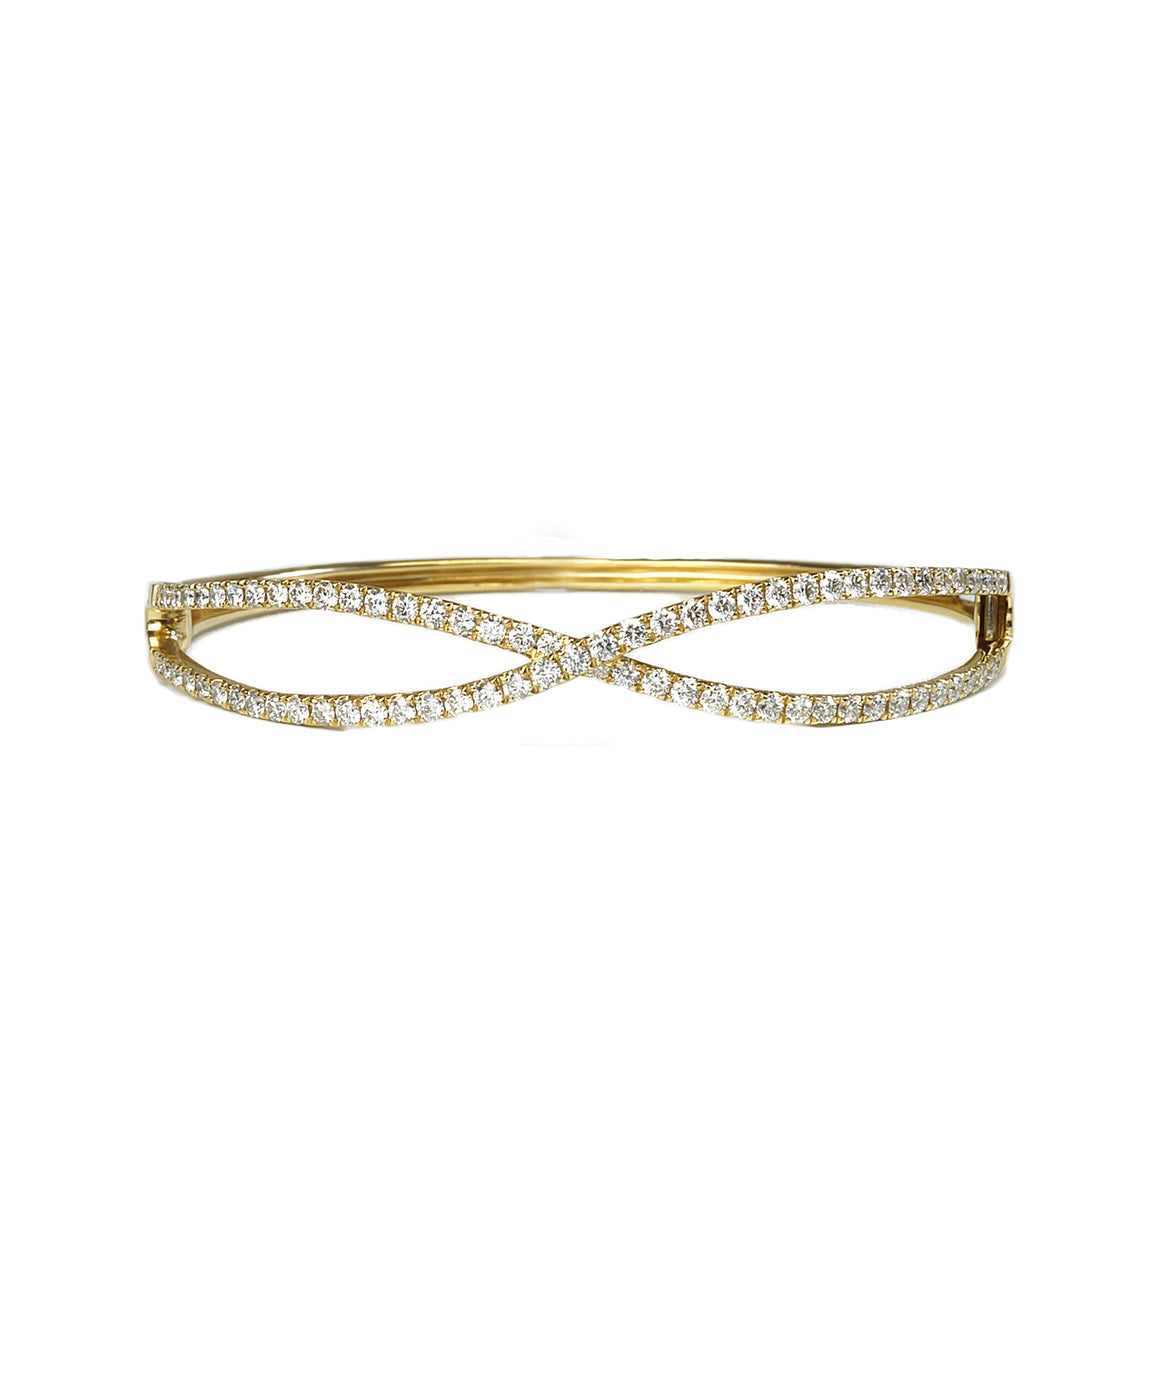 Infinity bangle with diamonds